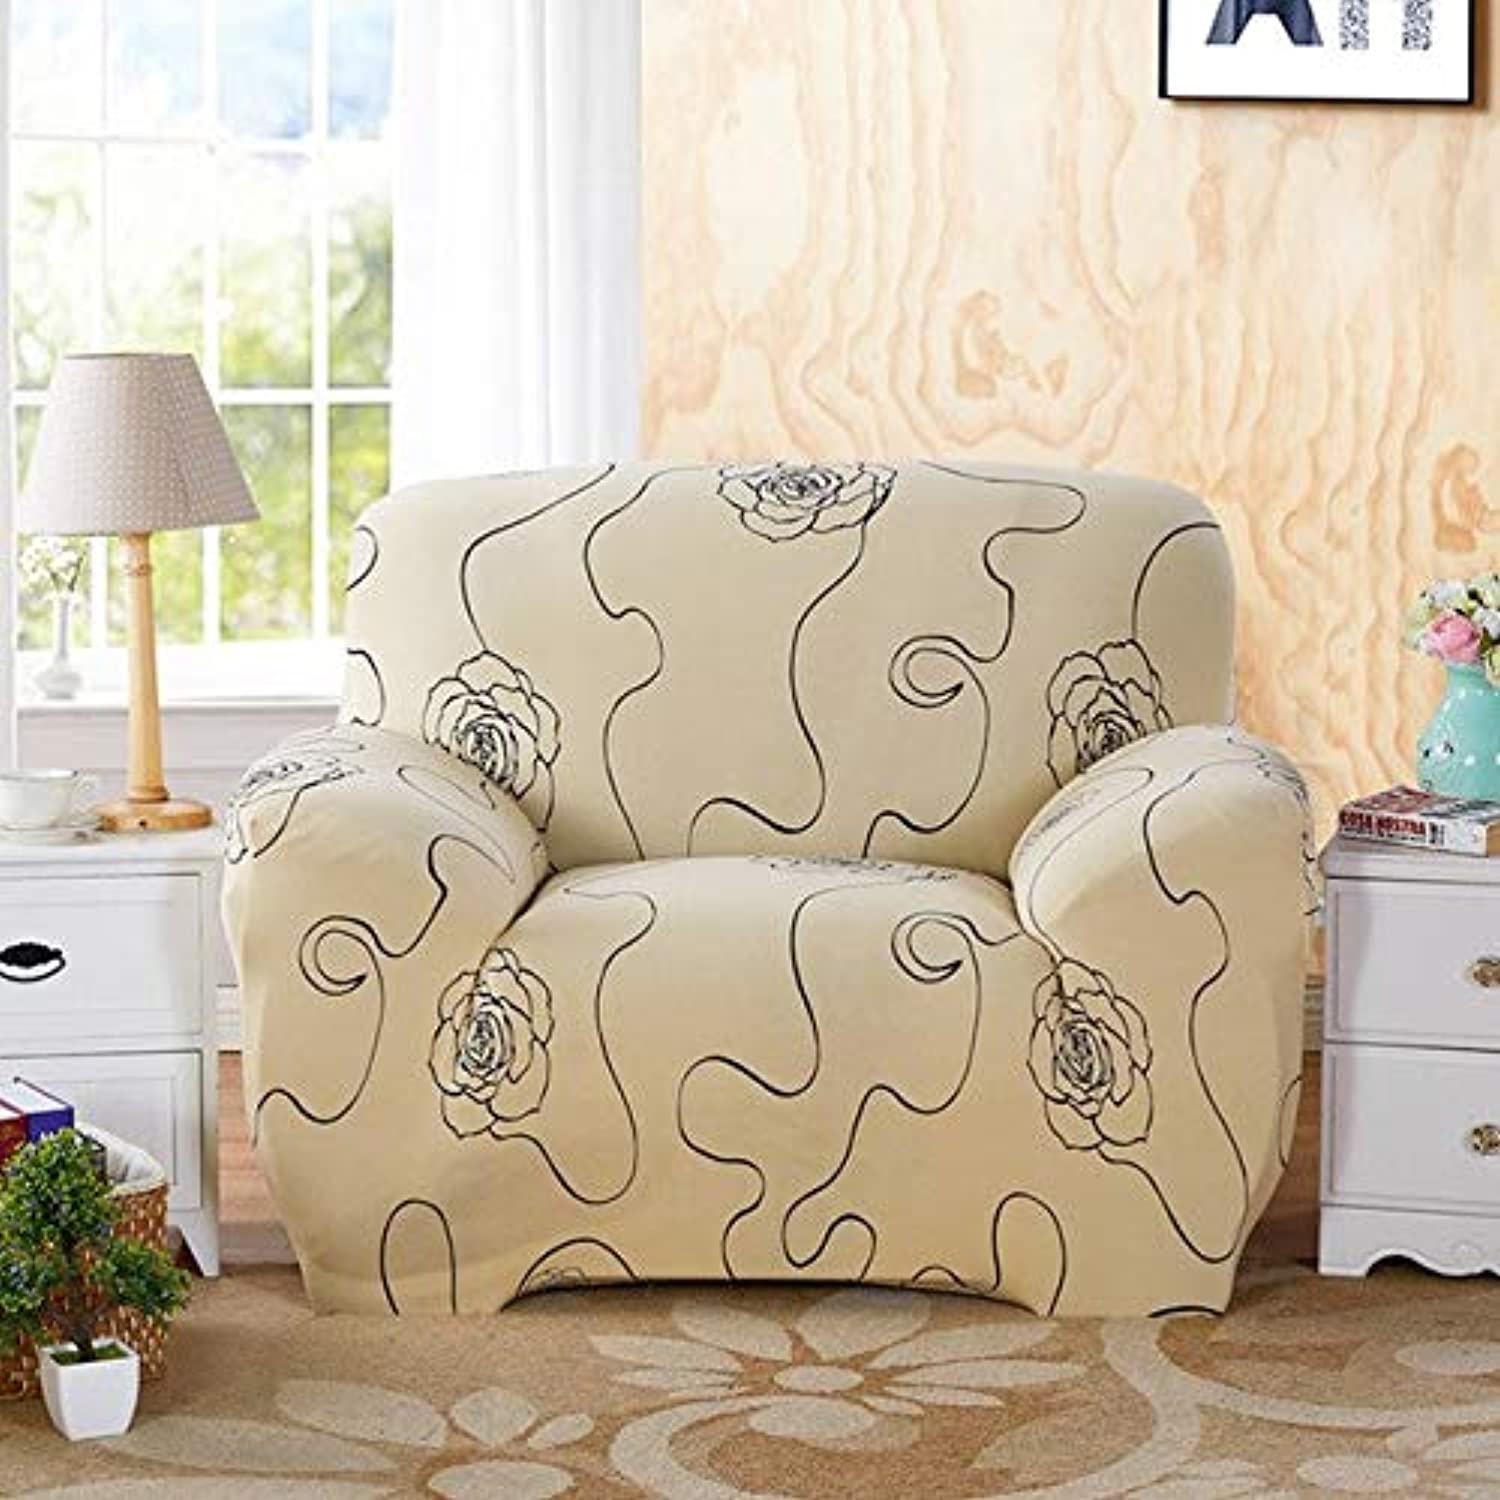 All-Inclusive Stretch Sofa Cover Without Armrest High Elastic Couch Cover Sofa Slipcovers Living Room Sofa Predection Bed Cover   Style 3, S